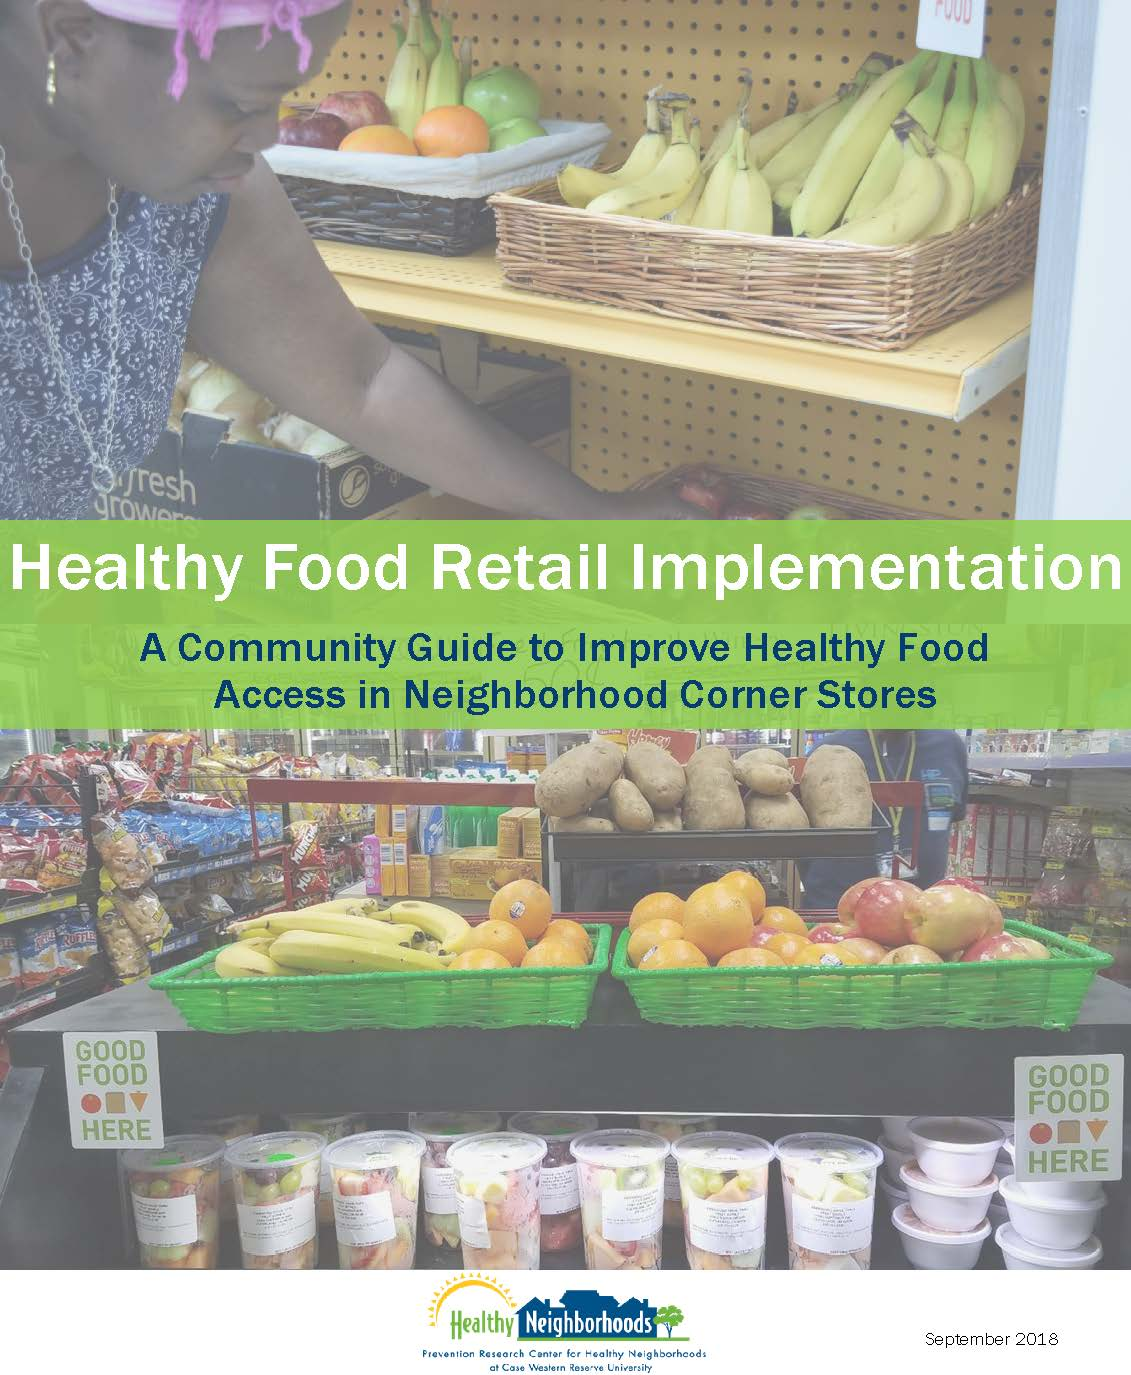 PRCHN_HealthyFoodRetailImplementationGuide1